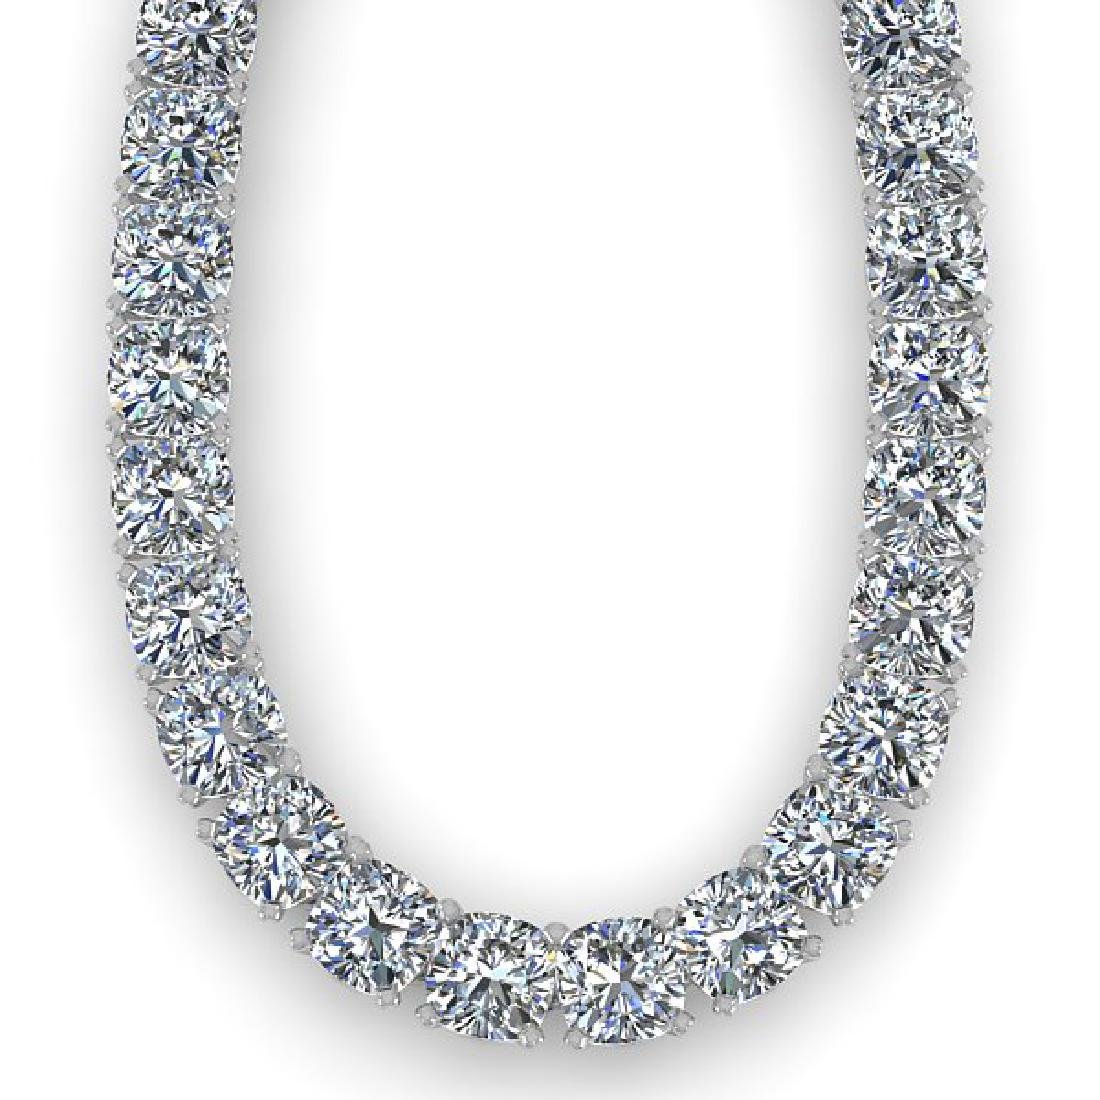 40 CTW Cushion Cut Certified SI Diamond Necklace 14K - 2